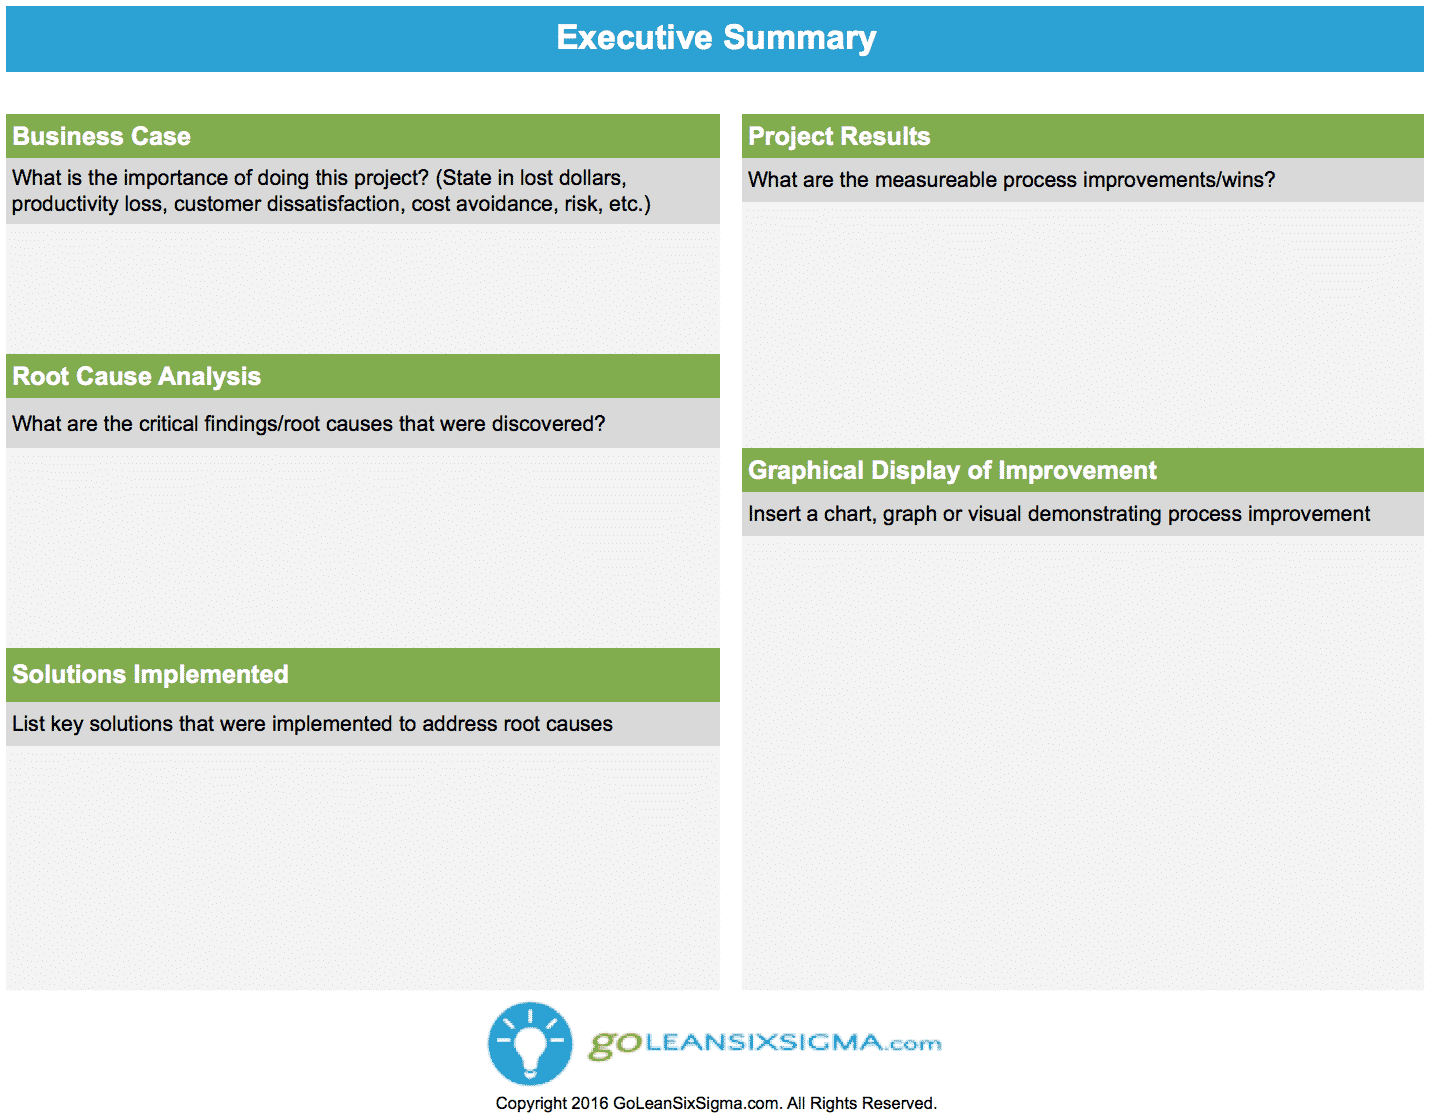 Executive Summary GoLeanSixSigma – Project Summary Template